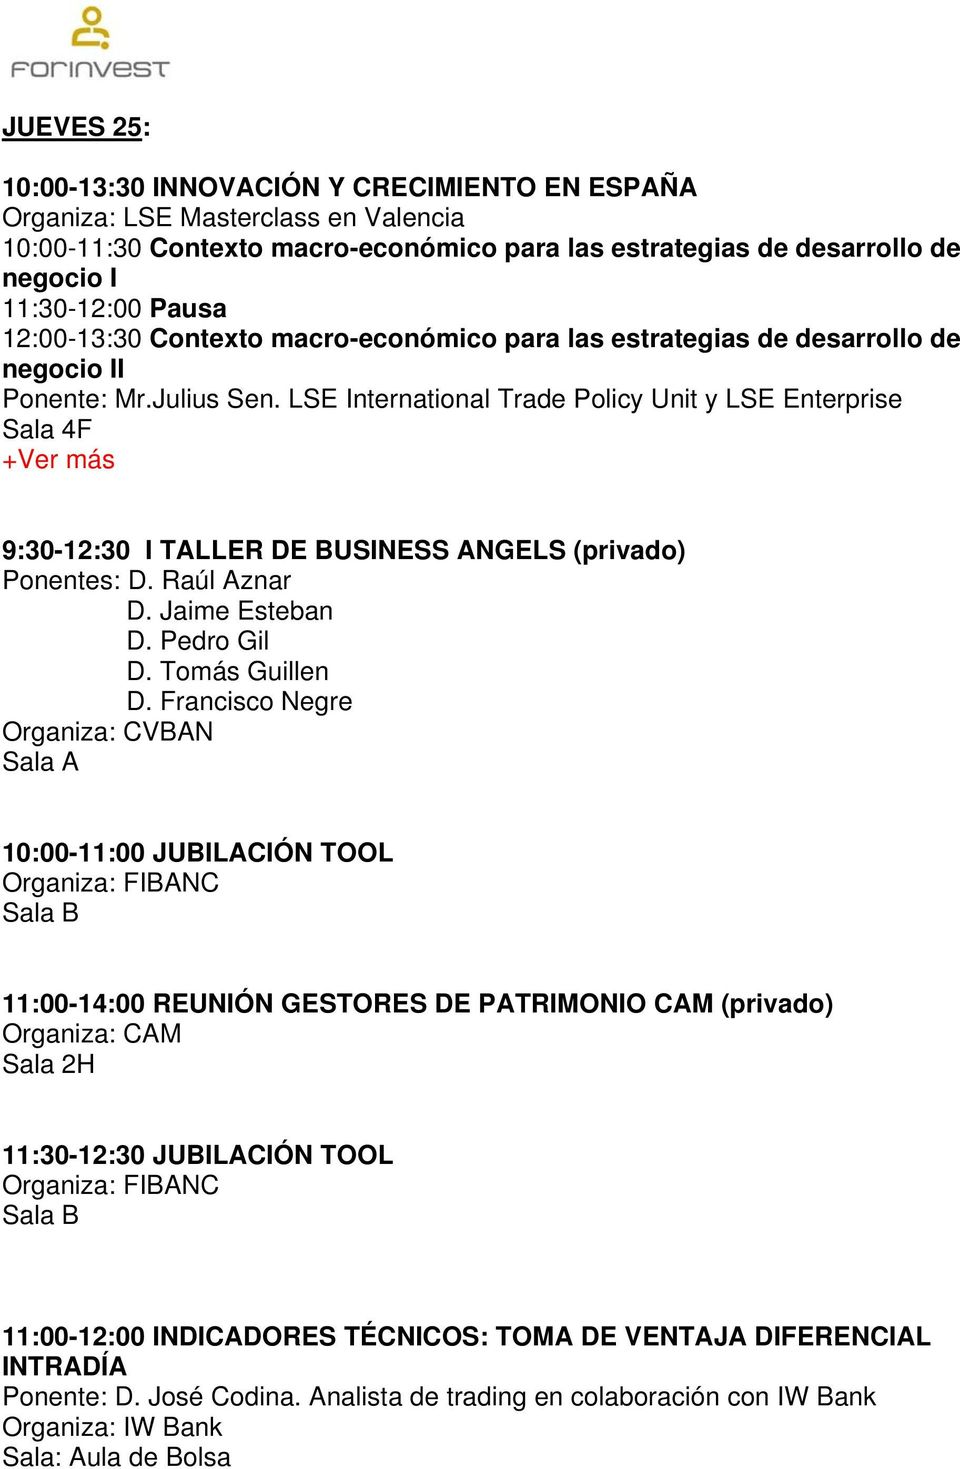 LSE International Trade Policy Unit y LSE Enterprise Sala 4F +Ver más 9:30-12:30 I TALLER DE BUSINESS ANGELS (privado) Ponentes: D. Raúl Aznar D. Jaime Esteban D. Pedro Gil D. Tomás Guillen D.